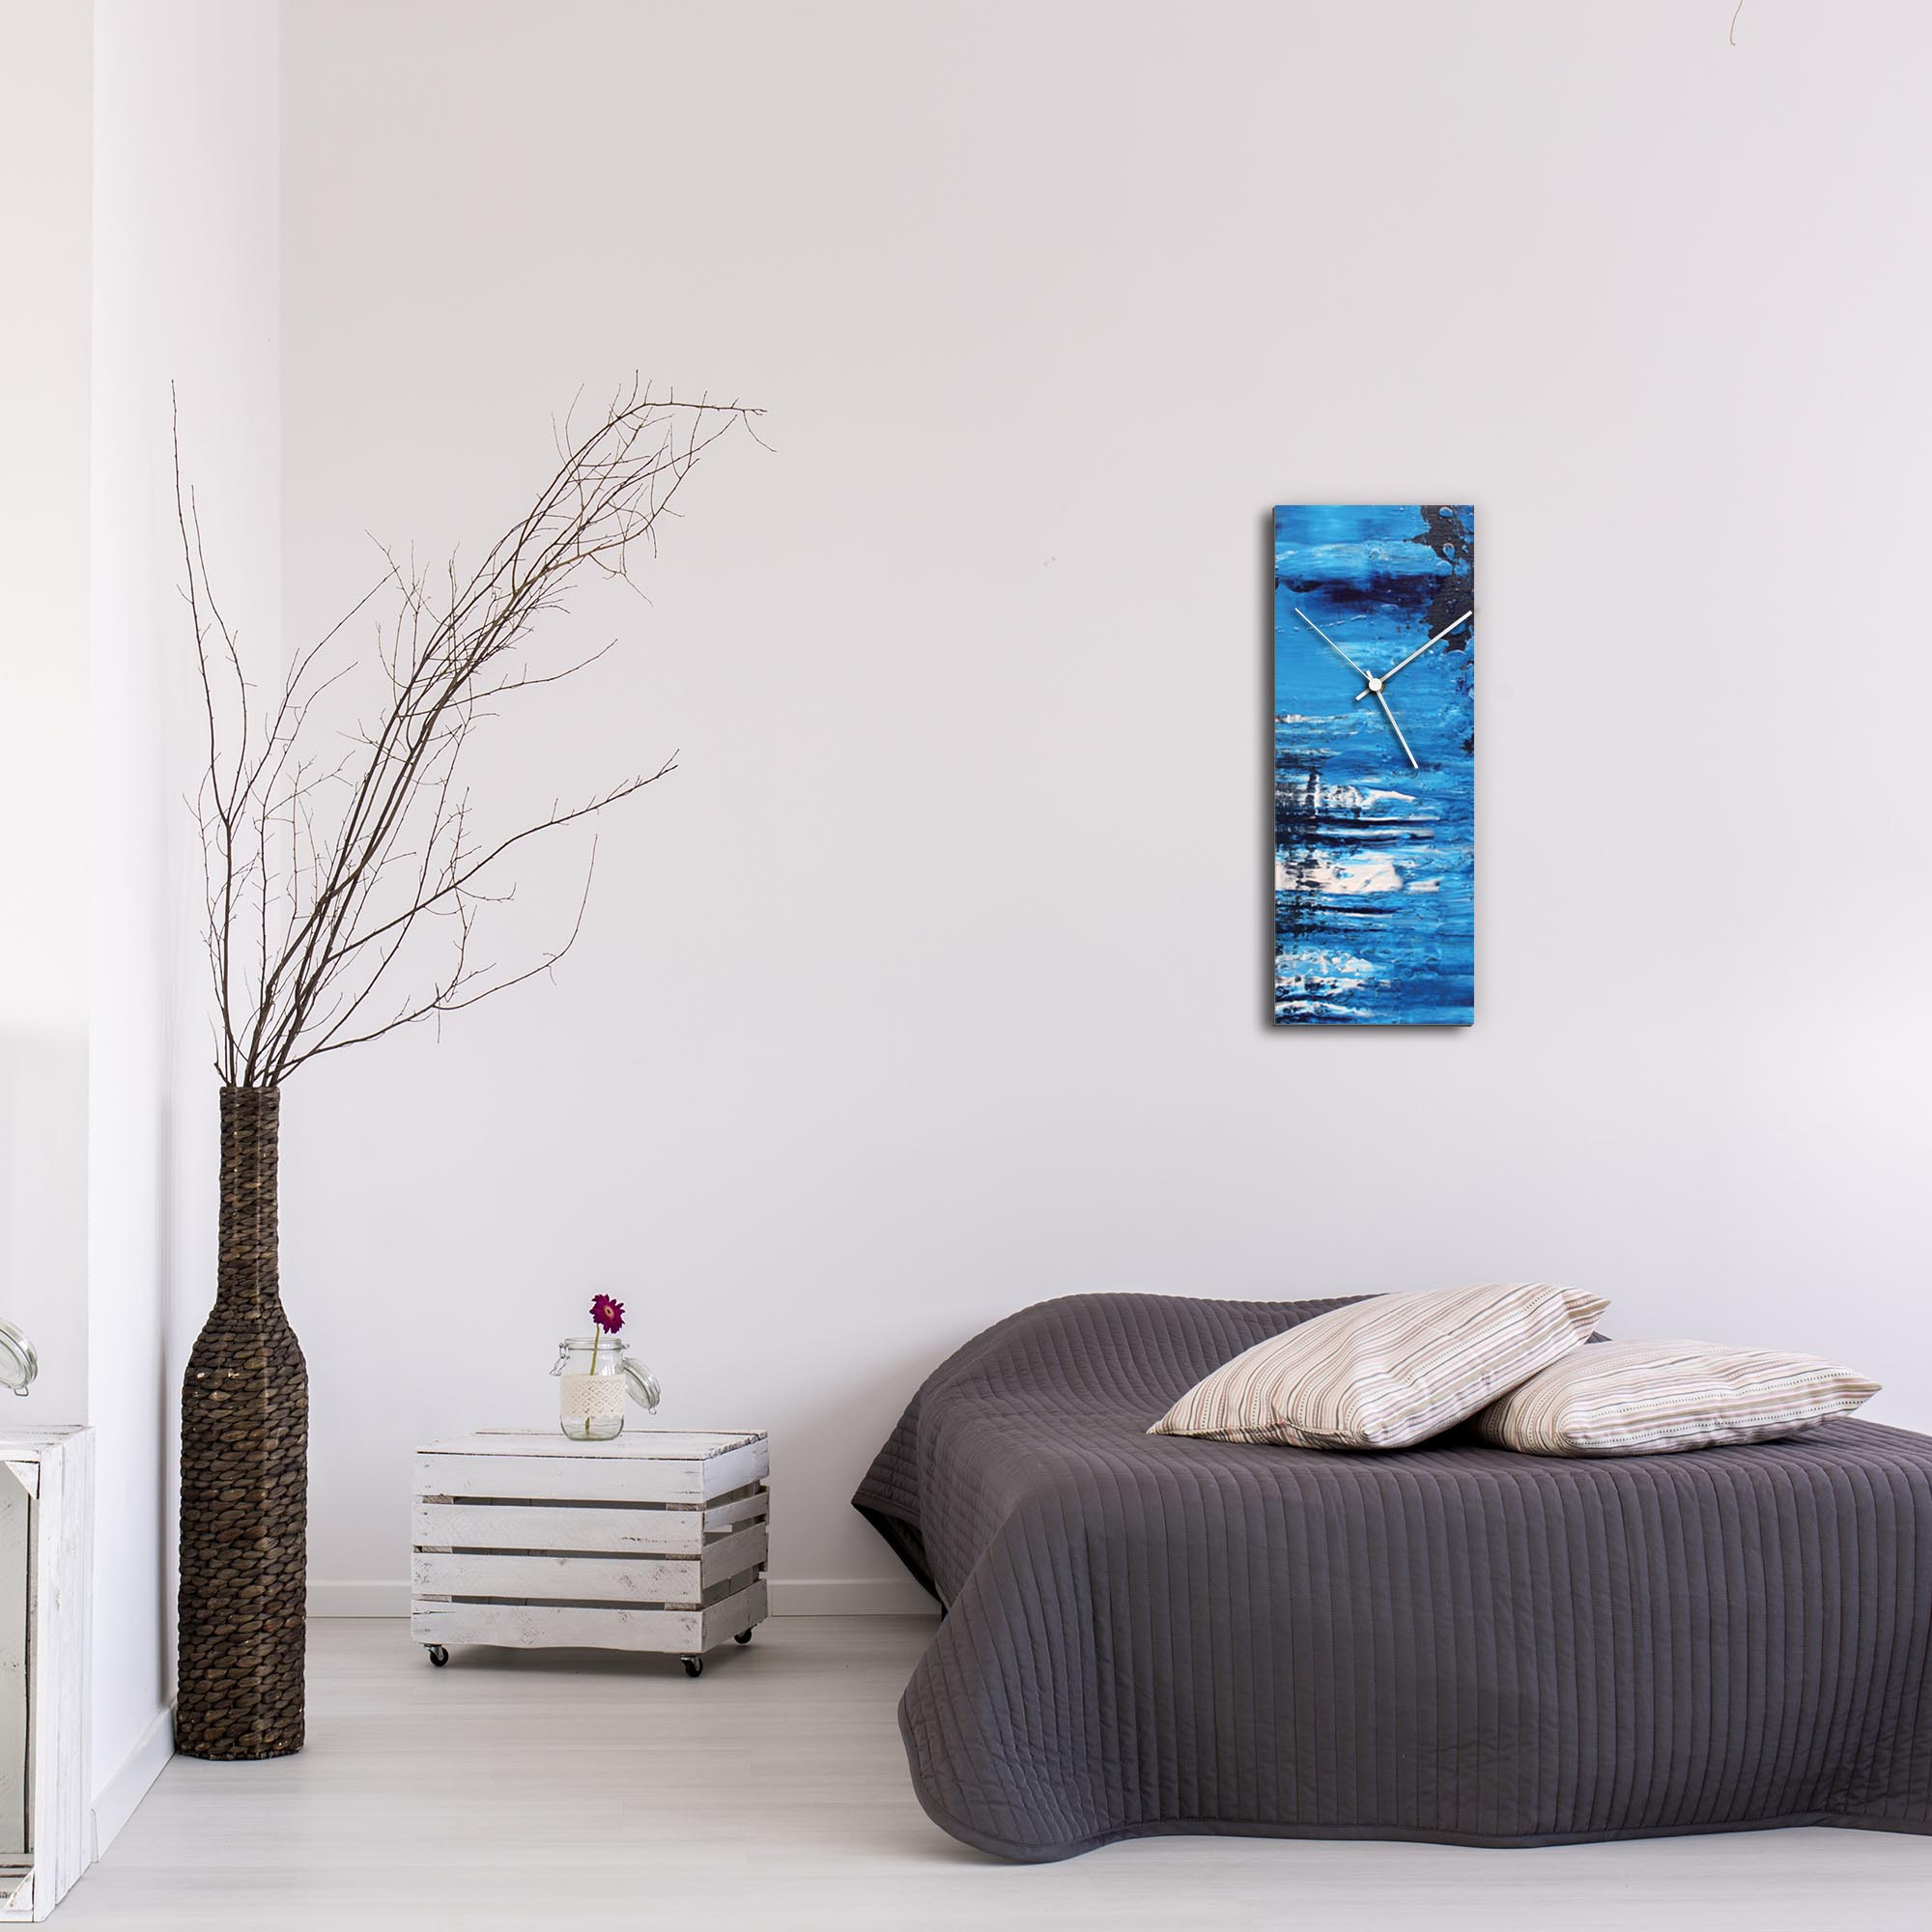 City Blue v1 Clock Large by Mendo Vasilevski - Urban Abstract Home Decor - Lifestyle View